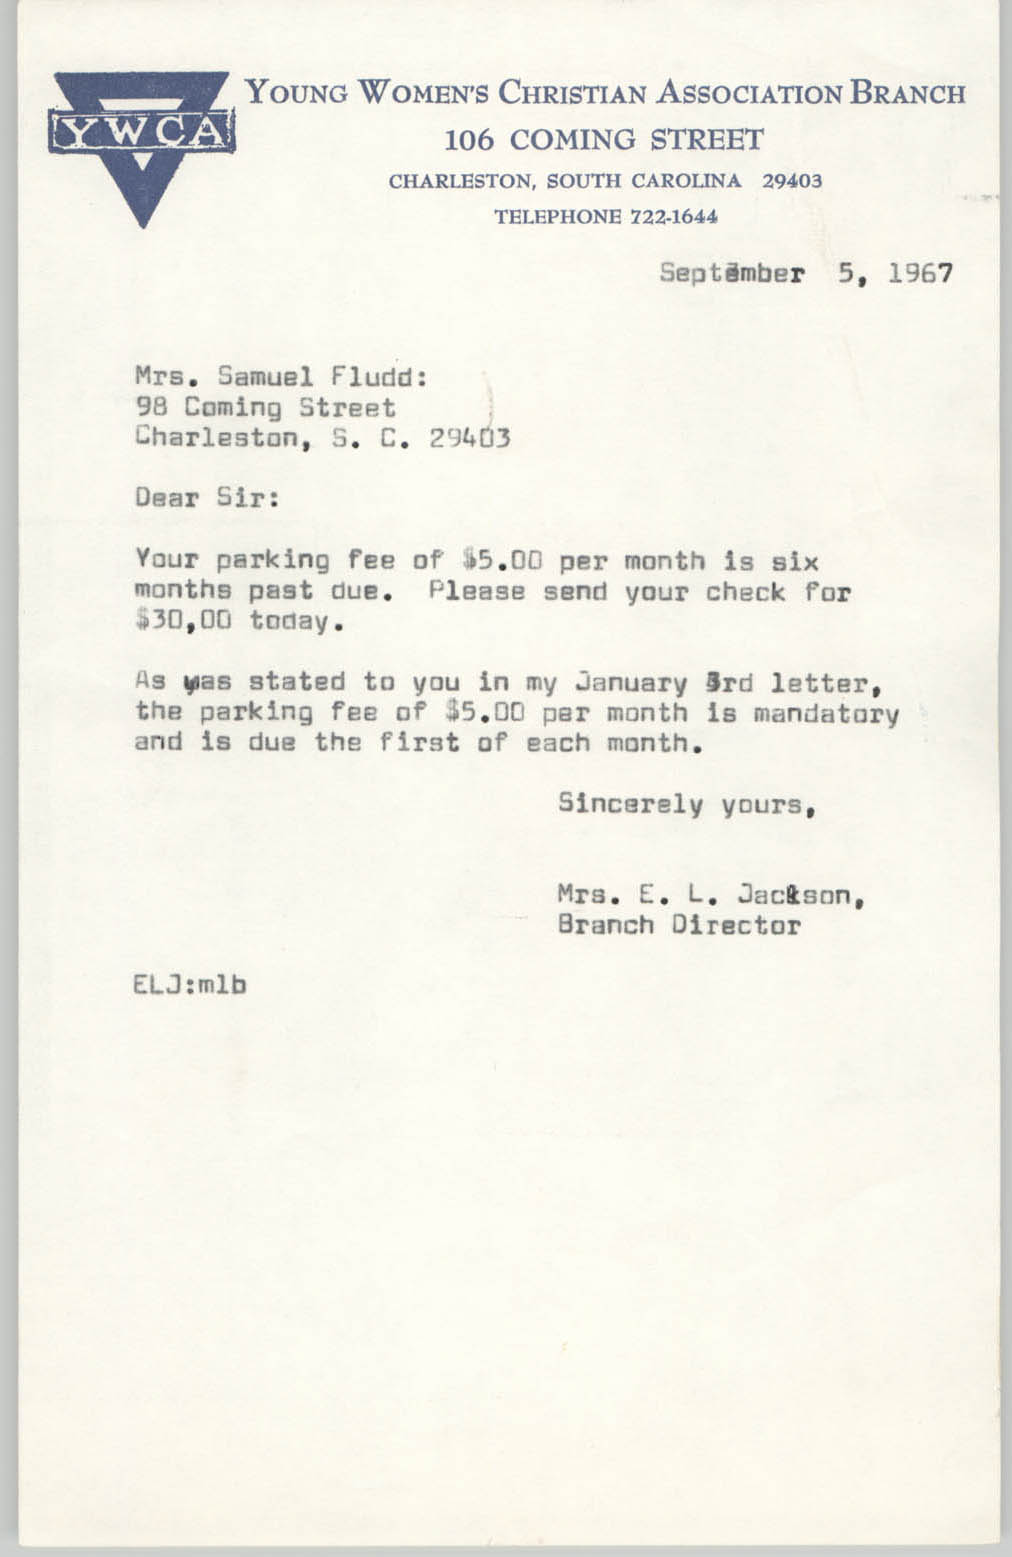 Letter from Christine O. Jackson to Samuel Fludd, September 5, 1967